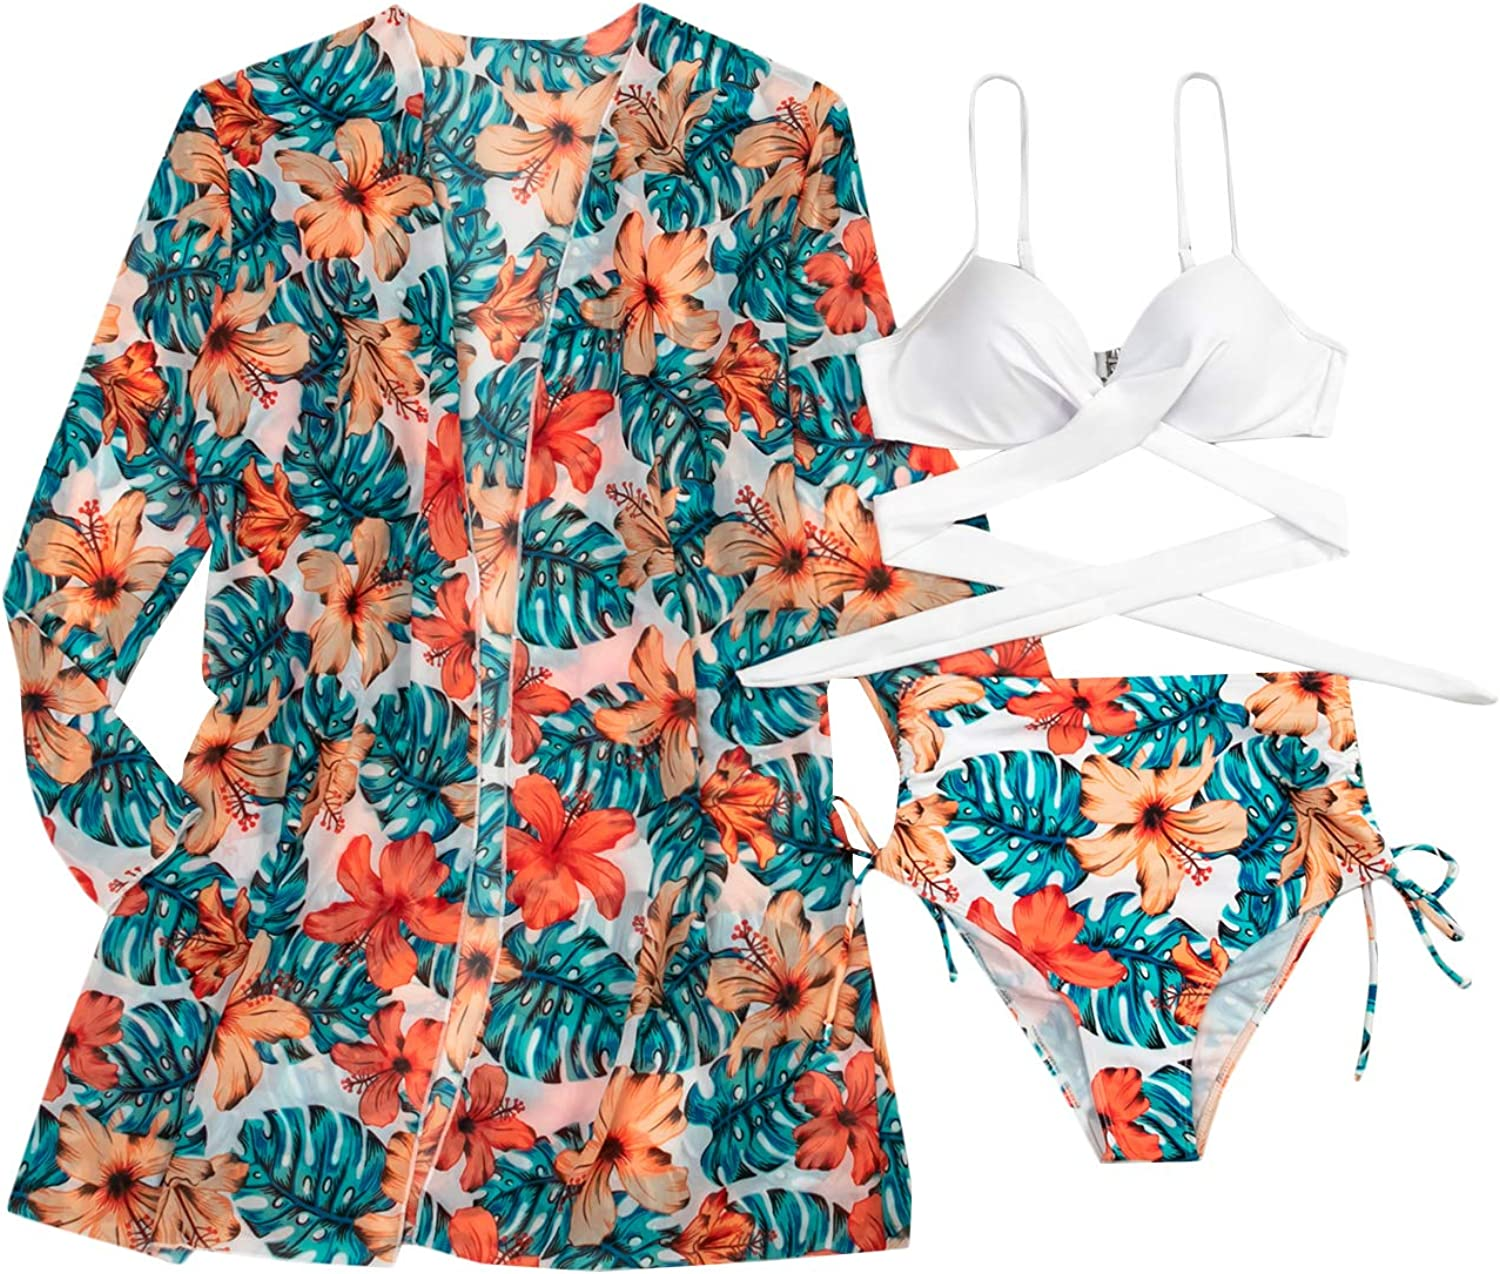 Verdusa Womens 3 Piece Floral Triangle High Waist Bikini Swimsuit with Cover Up